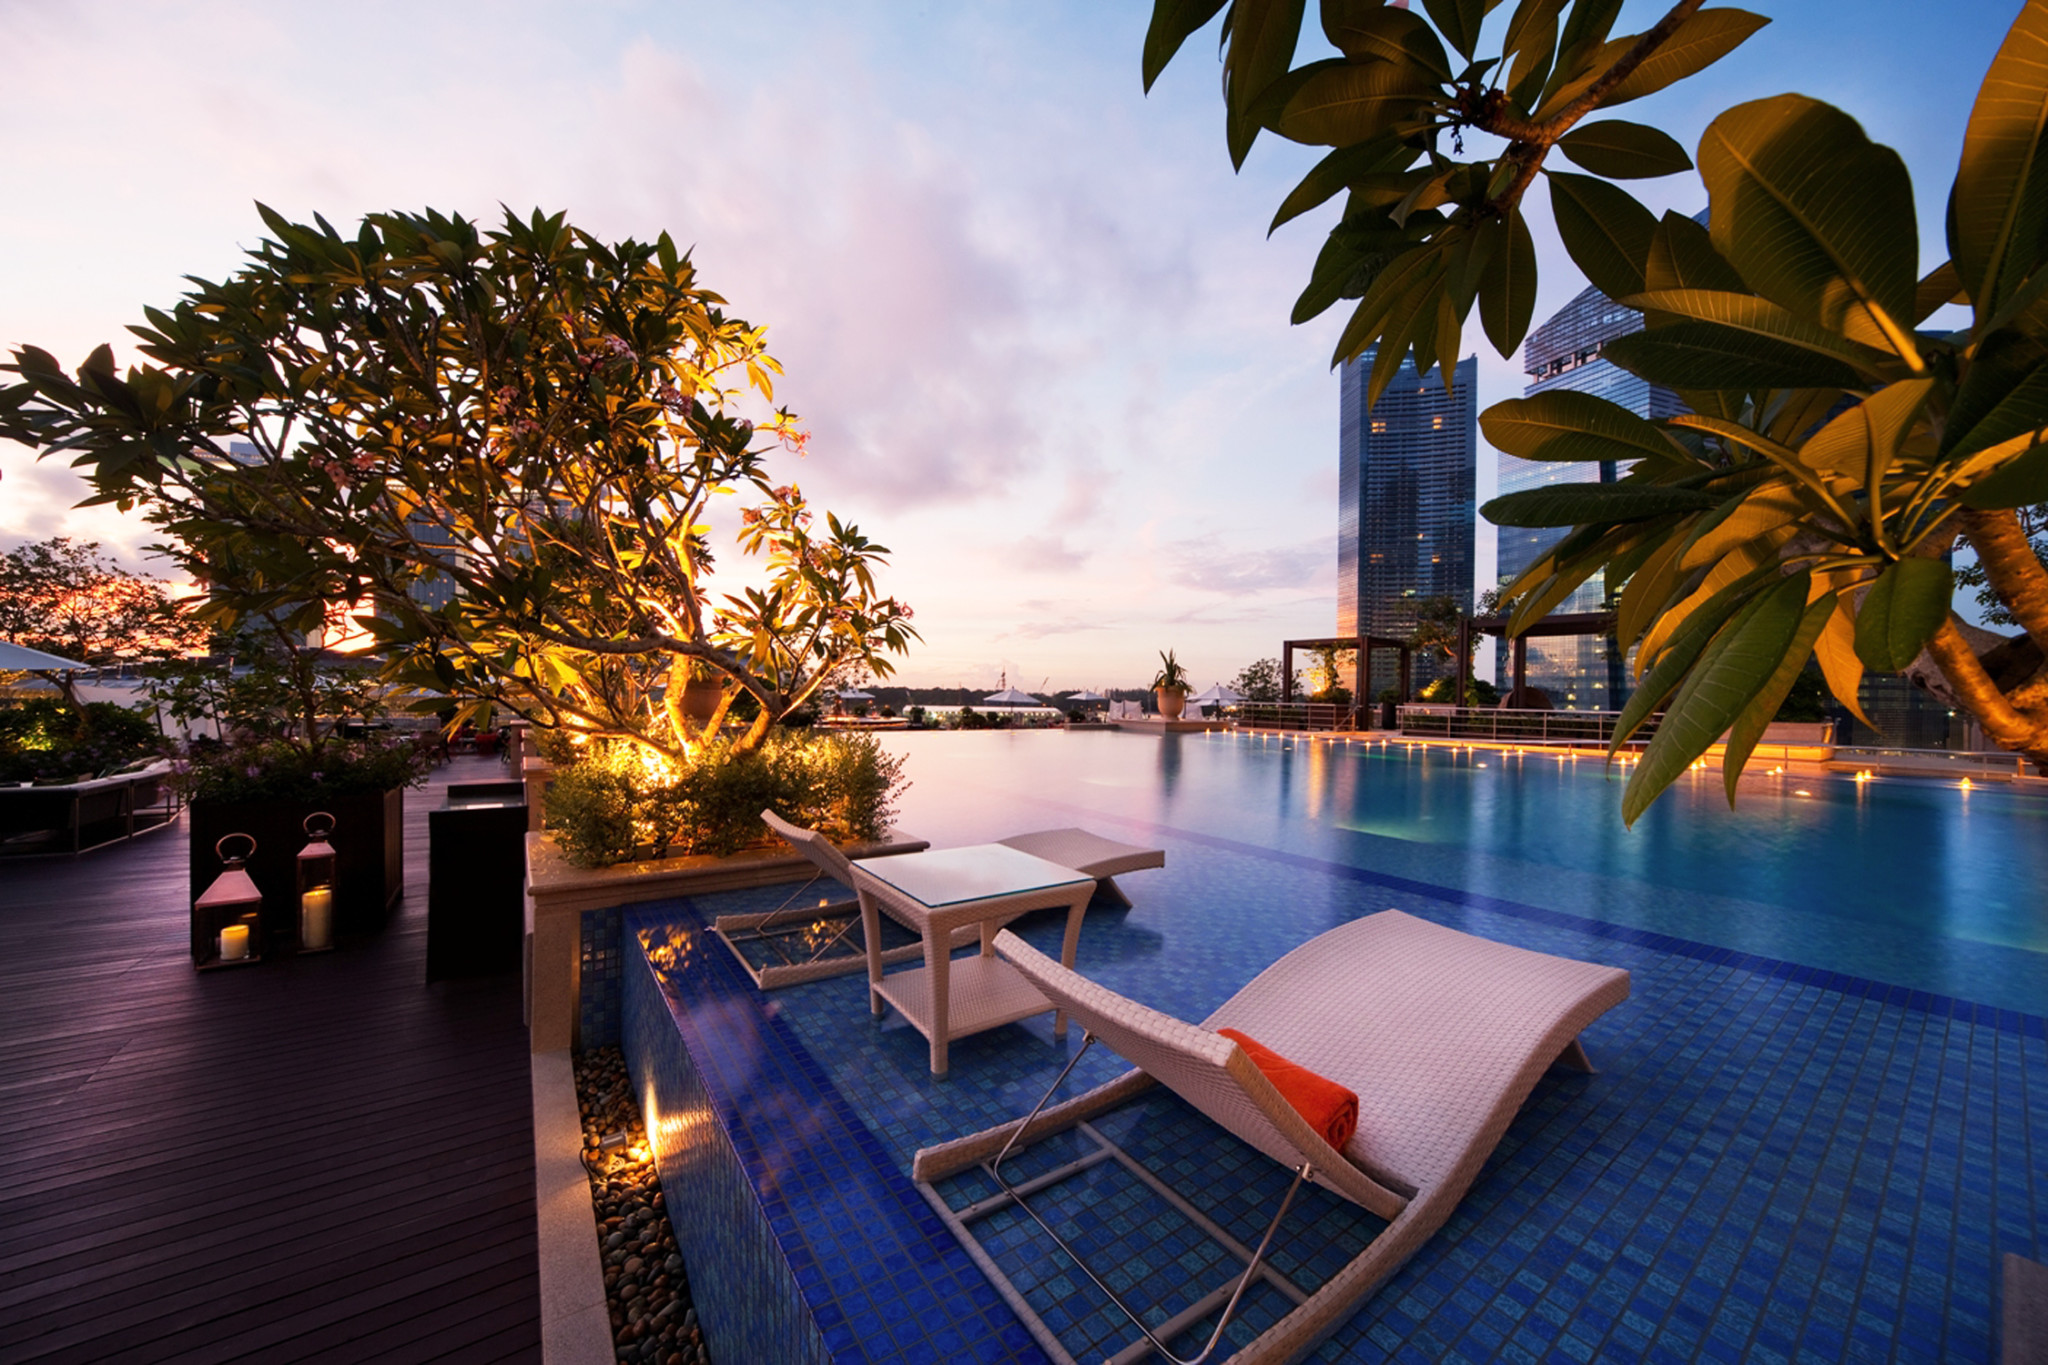 Rooftop Infinity Pool - The Fullerton Bay Hotel Singapore